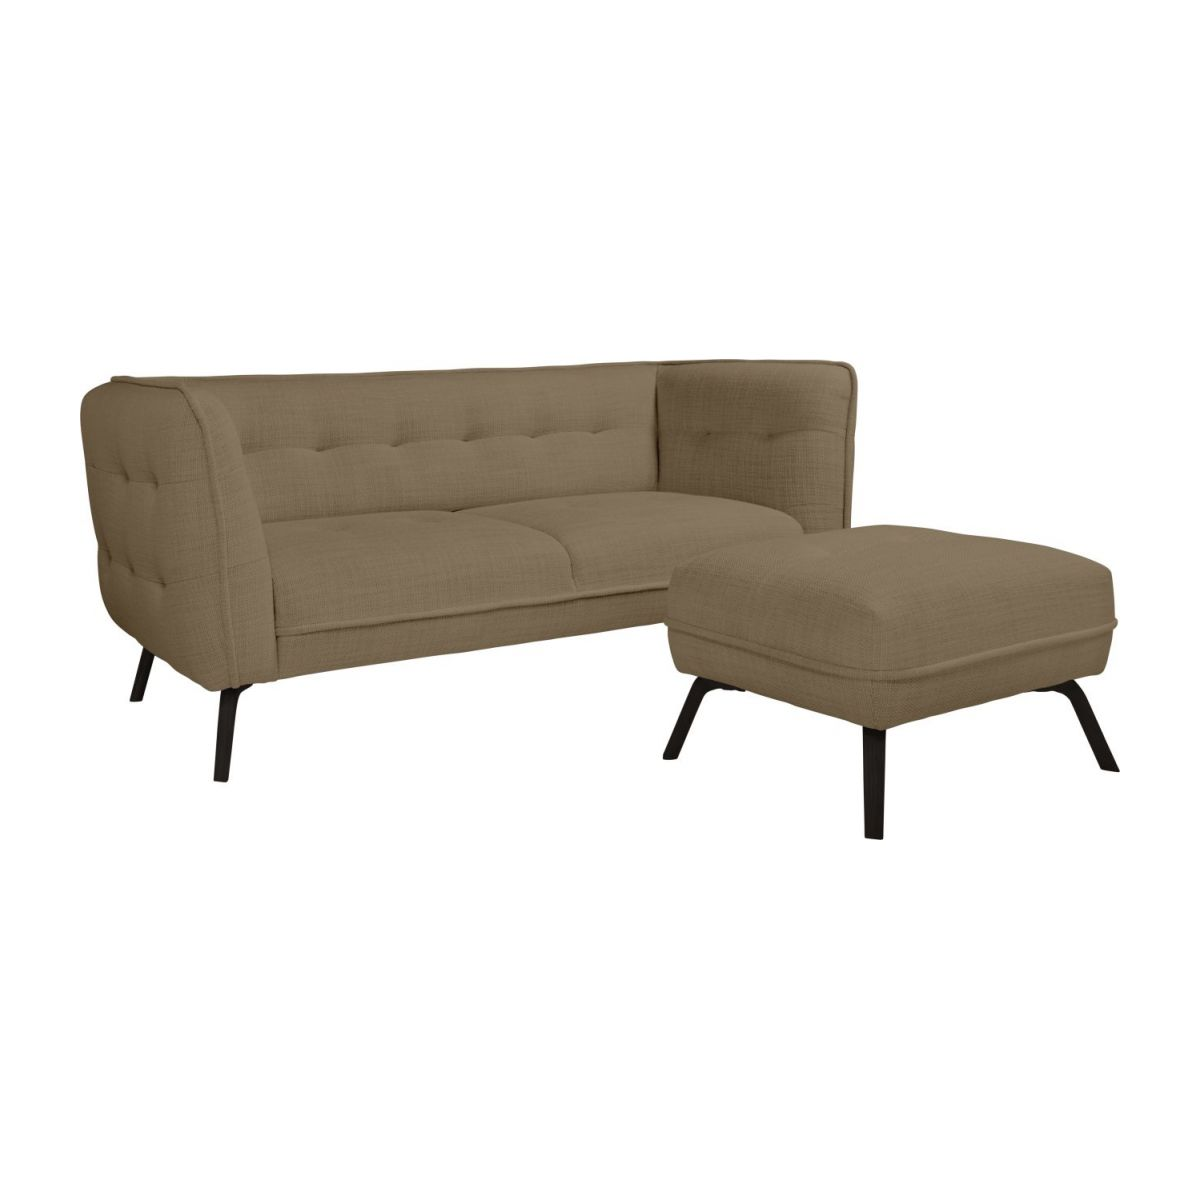 2 seater sofa in Fasoli fabric, jatoba brown and dark legs n°9